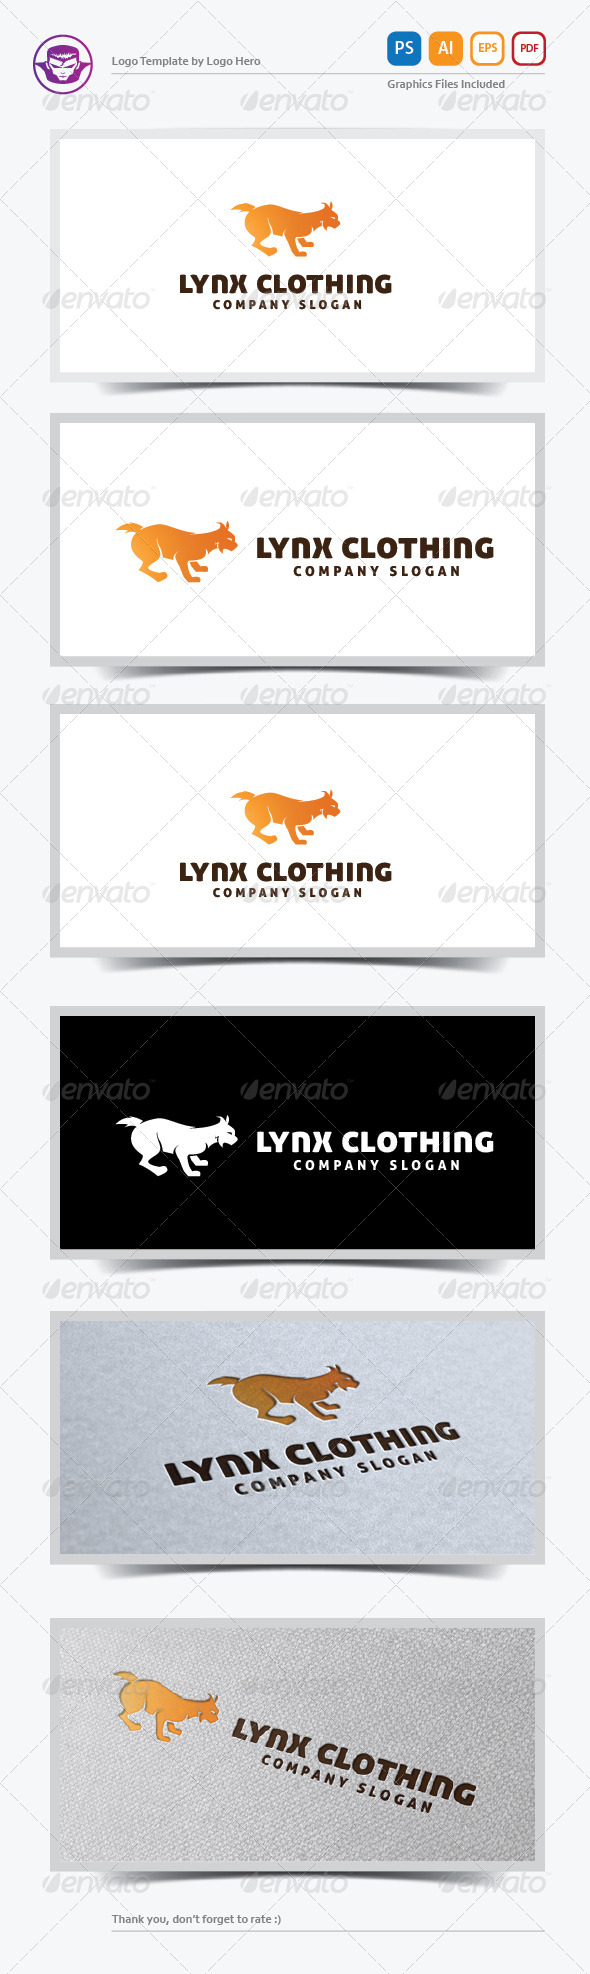 GraphicRiver Lynx Clothing Logo Template 5823780